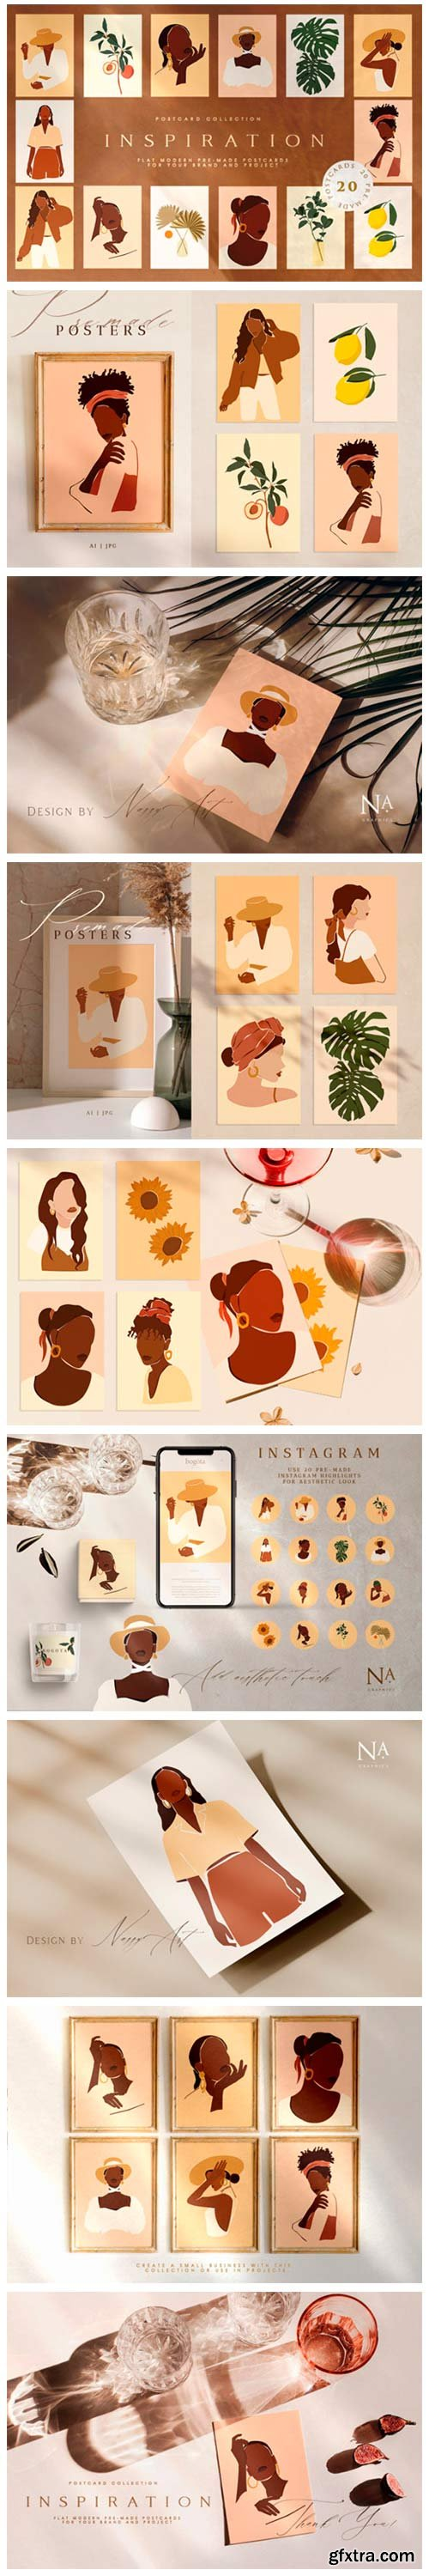 Inspiration Postcard Collection 4383751